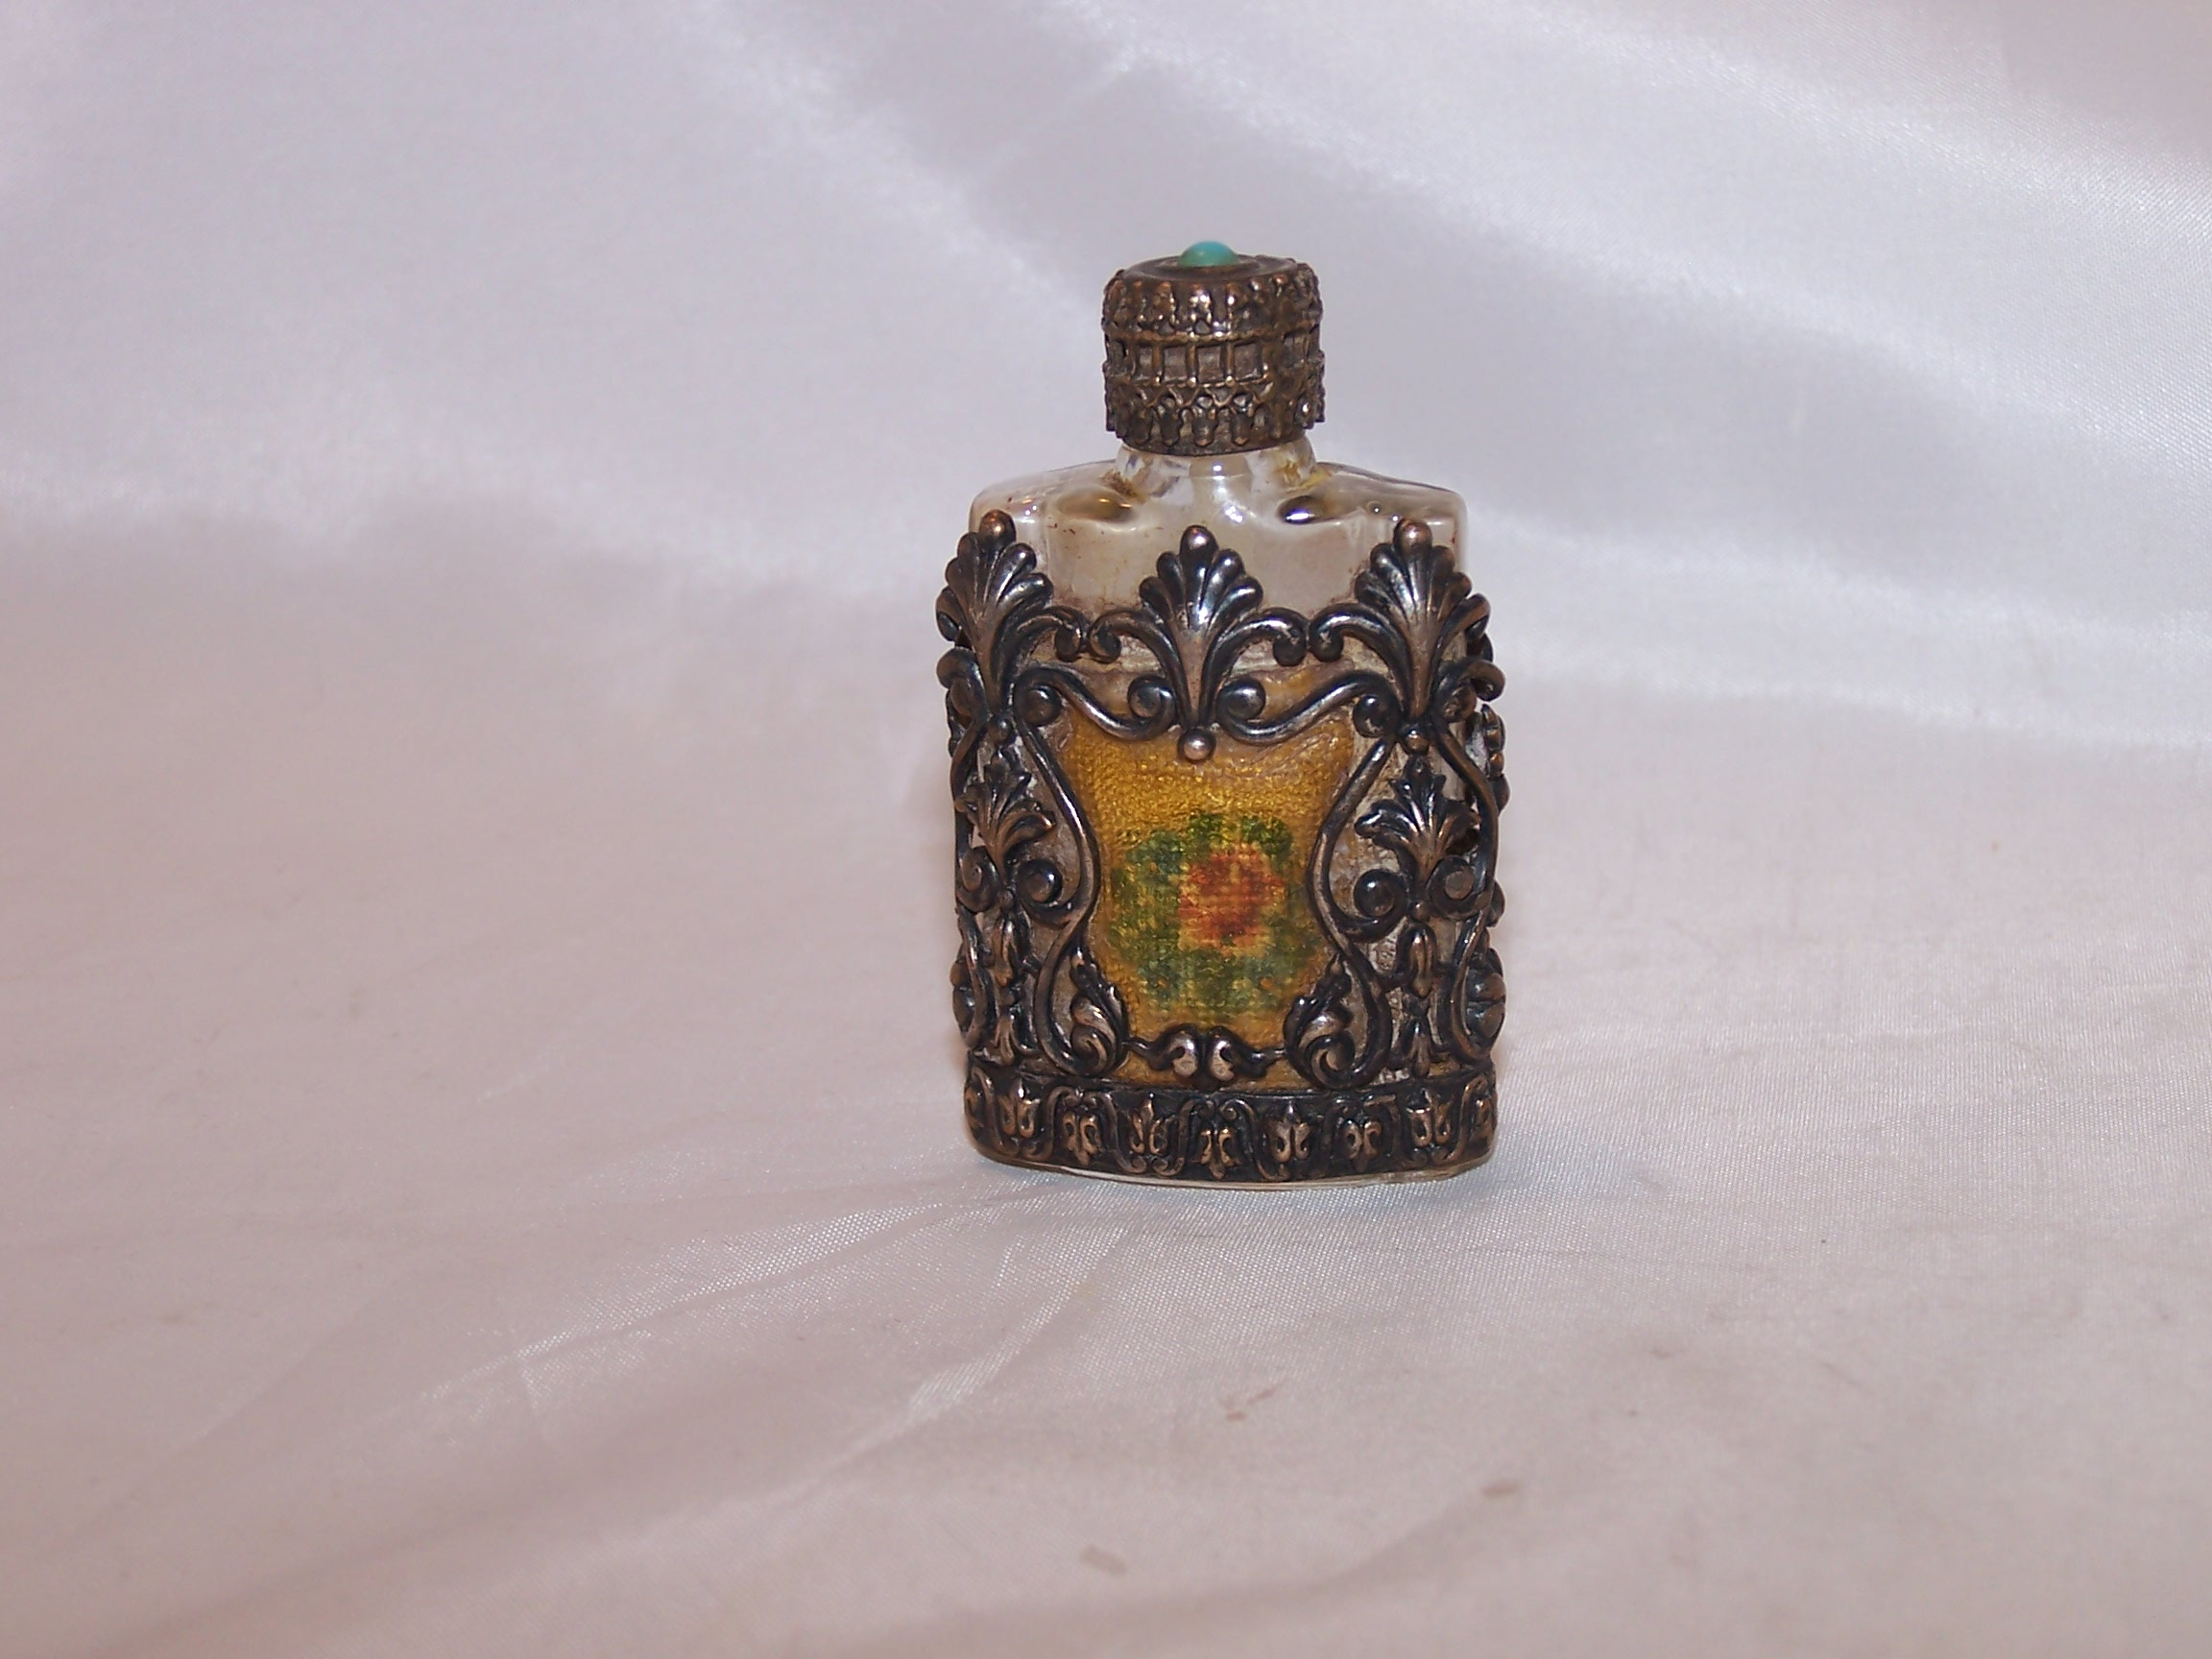 Perfume Bottle, Silver Filigree, Embroidery, Vintage